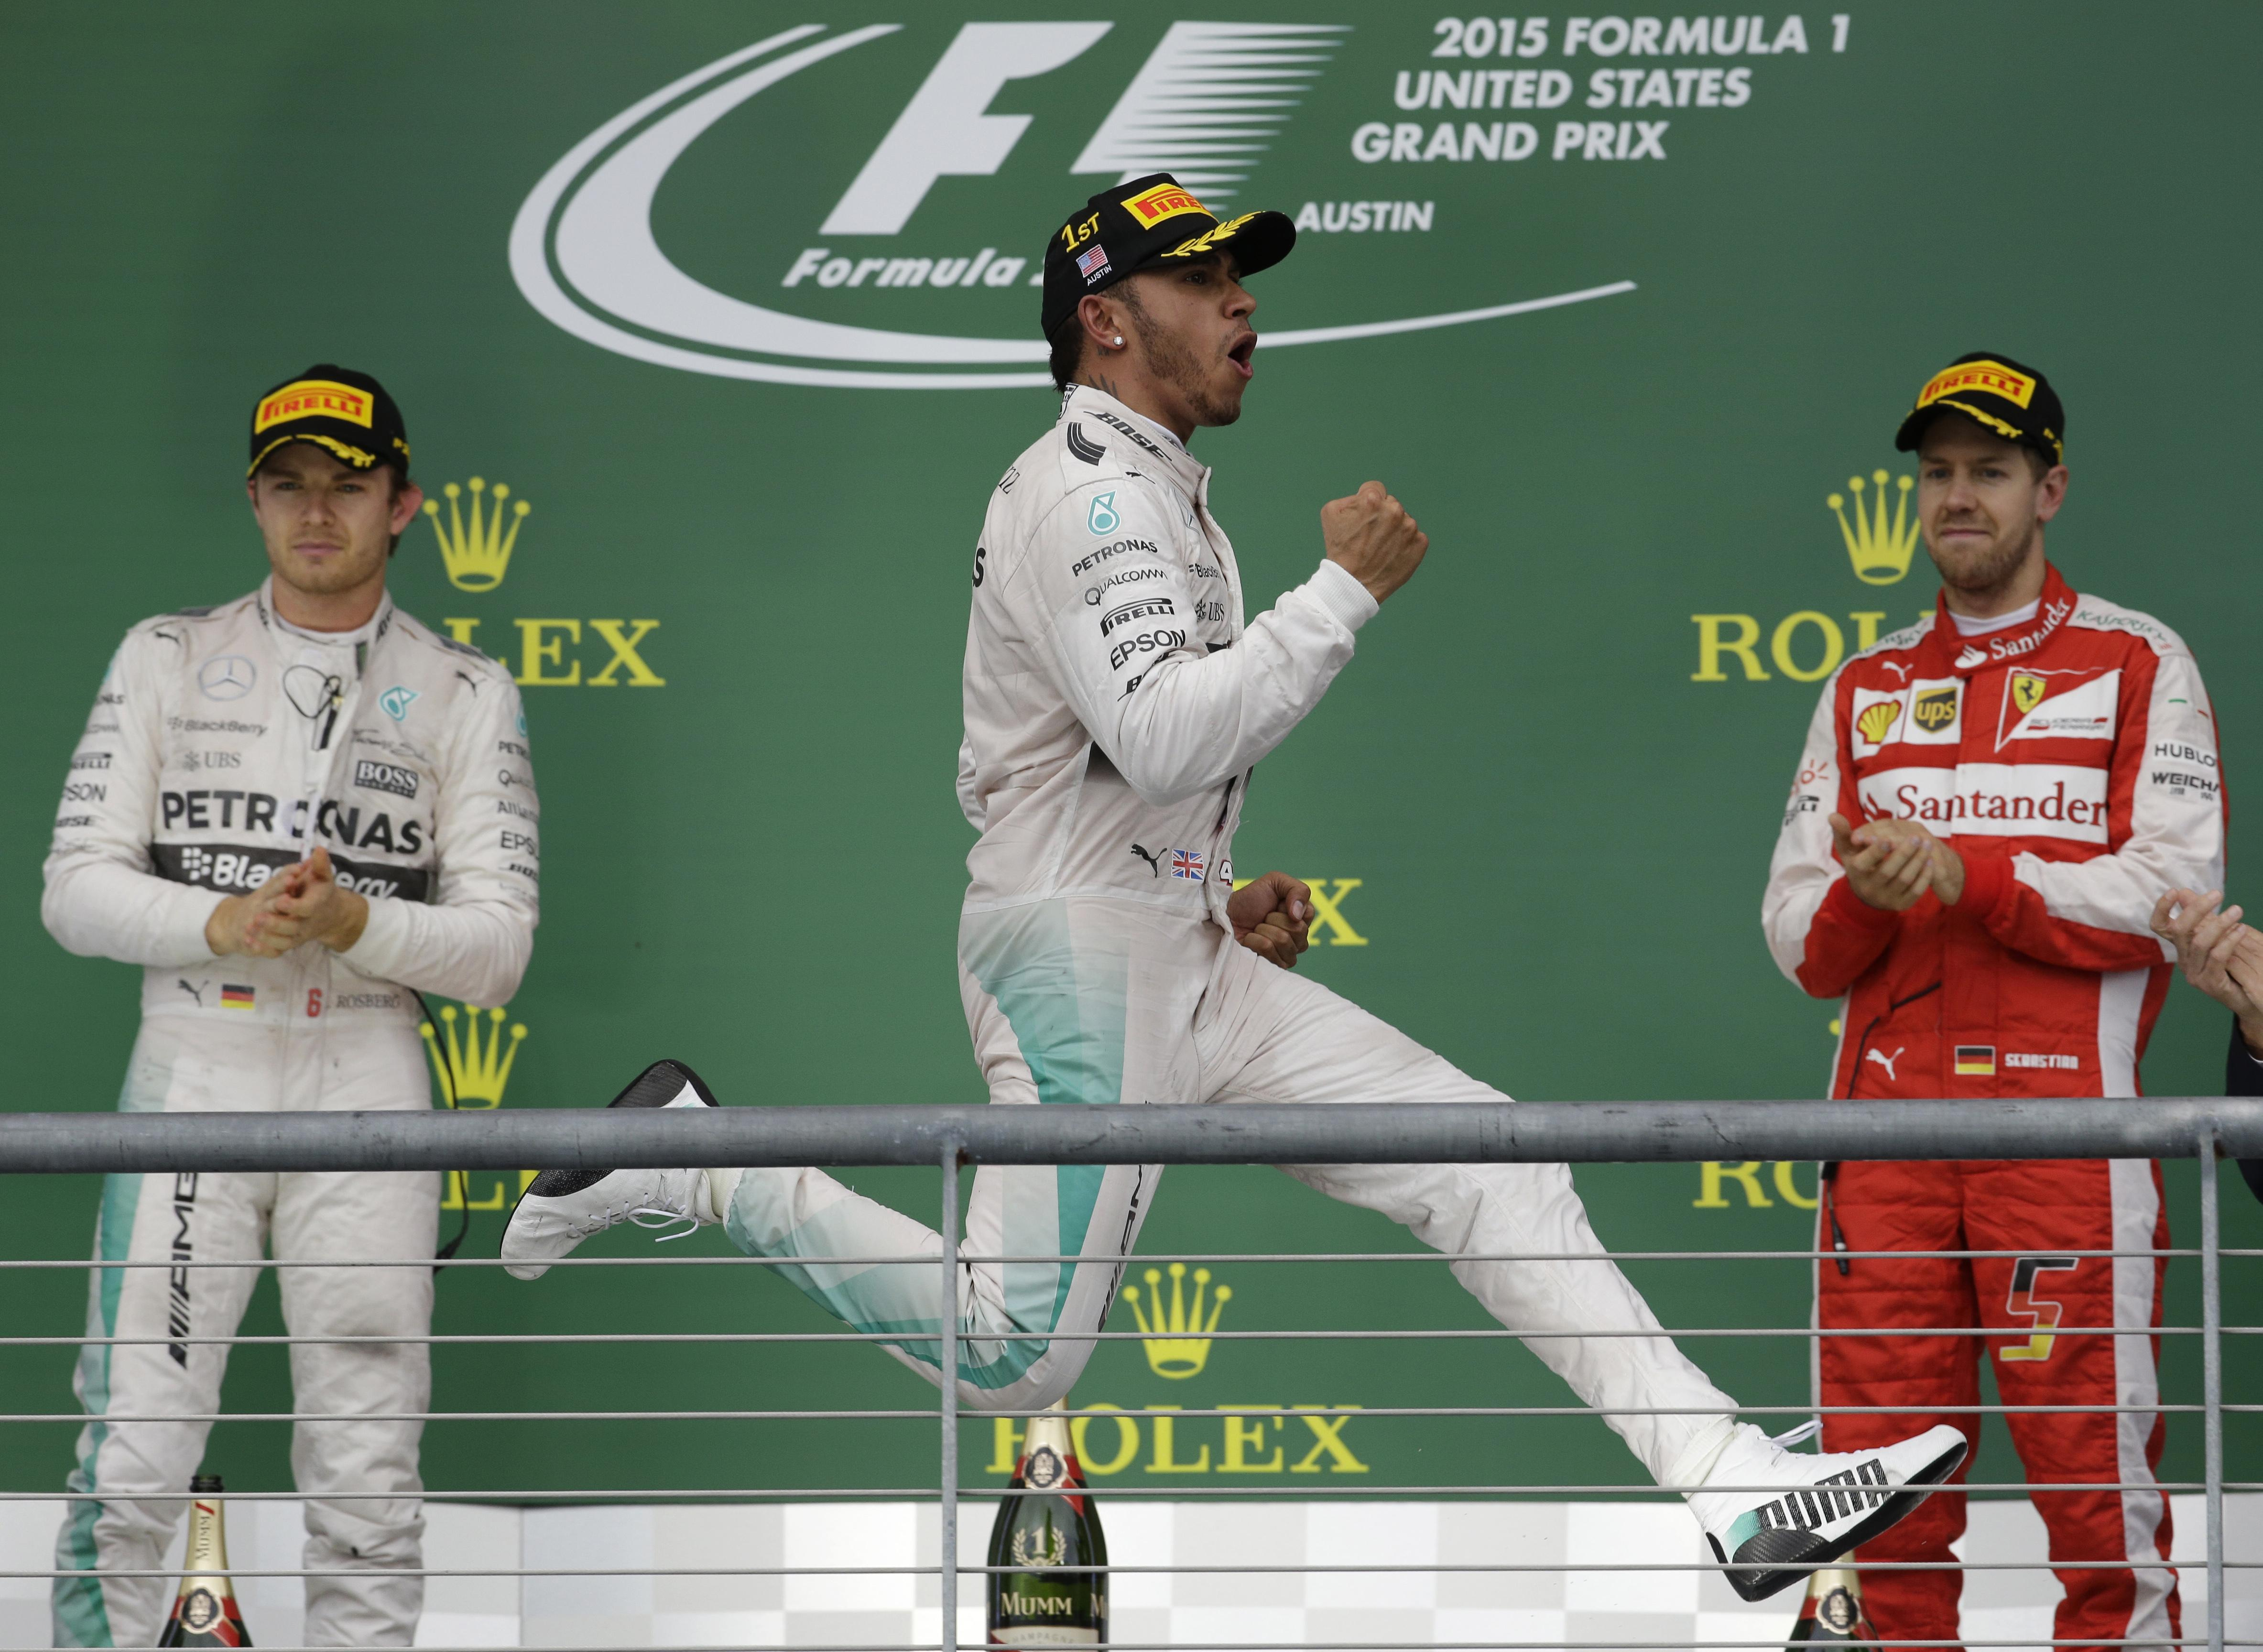 Lewis Hamilton will look to keep his hot run in Austin alive this weekend